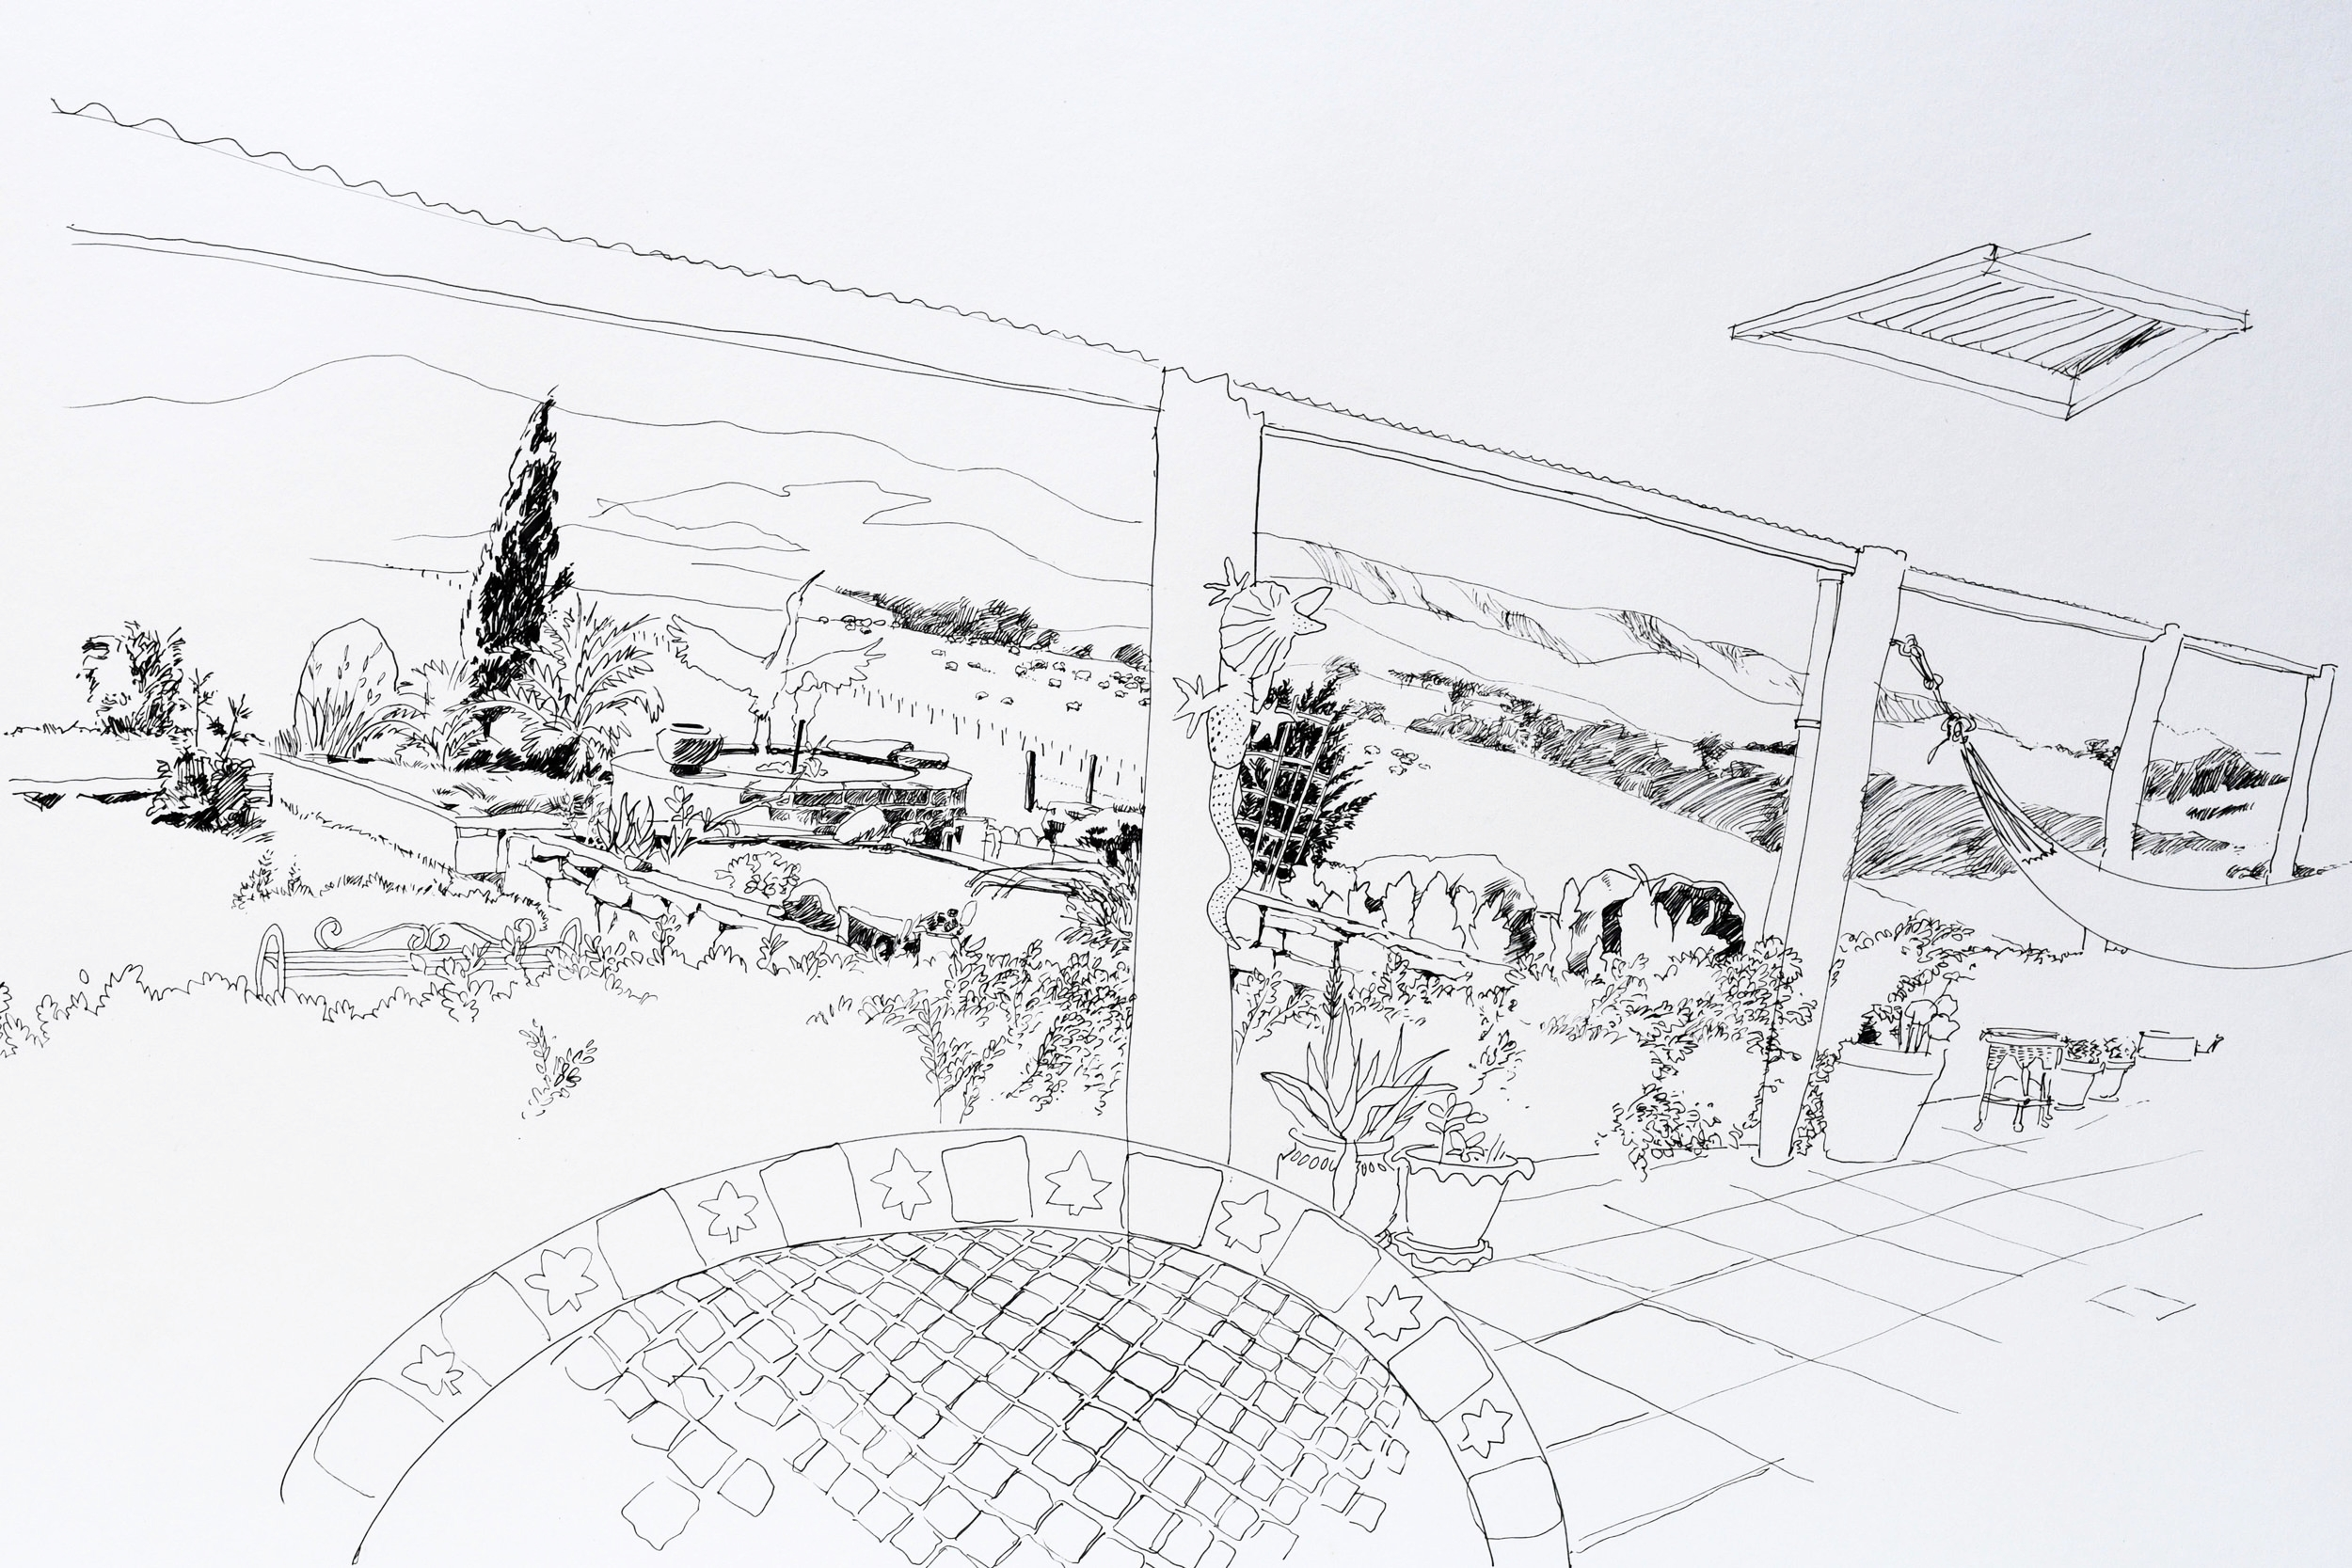 Line drawing of the view and landscape of Castagna Vineyard in Victoria Australia